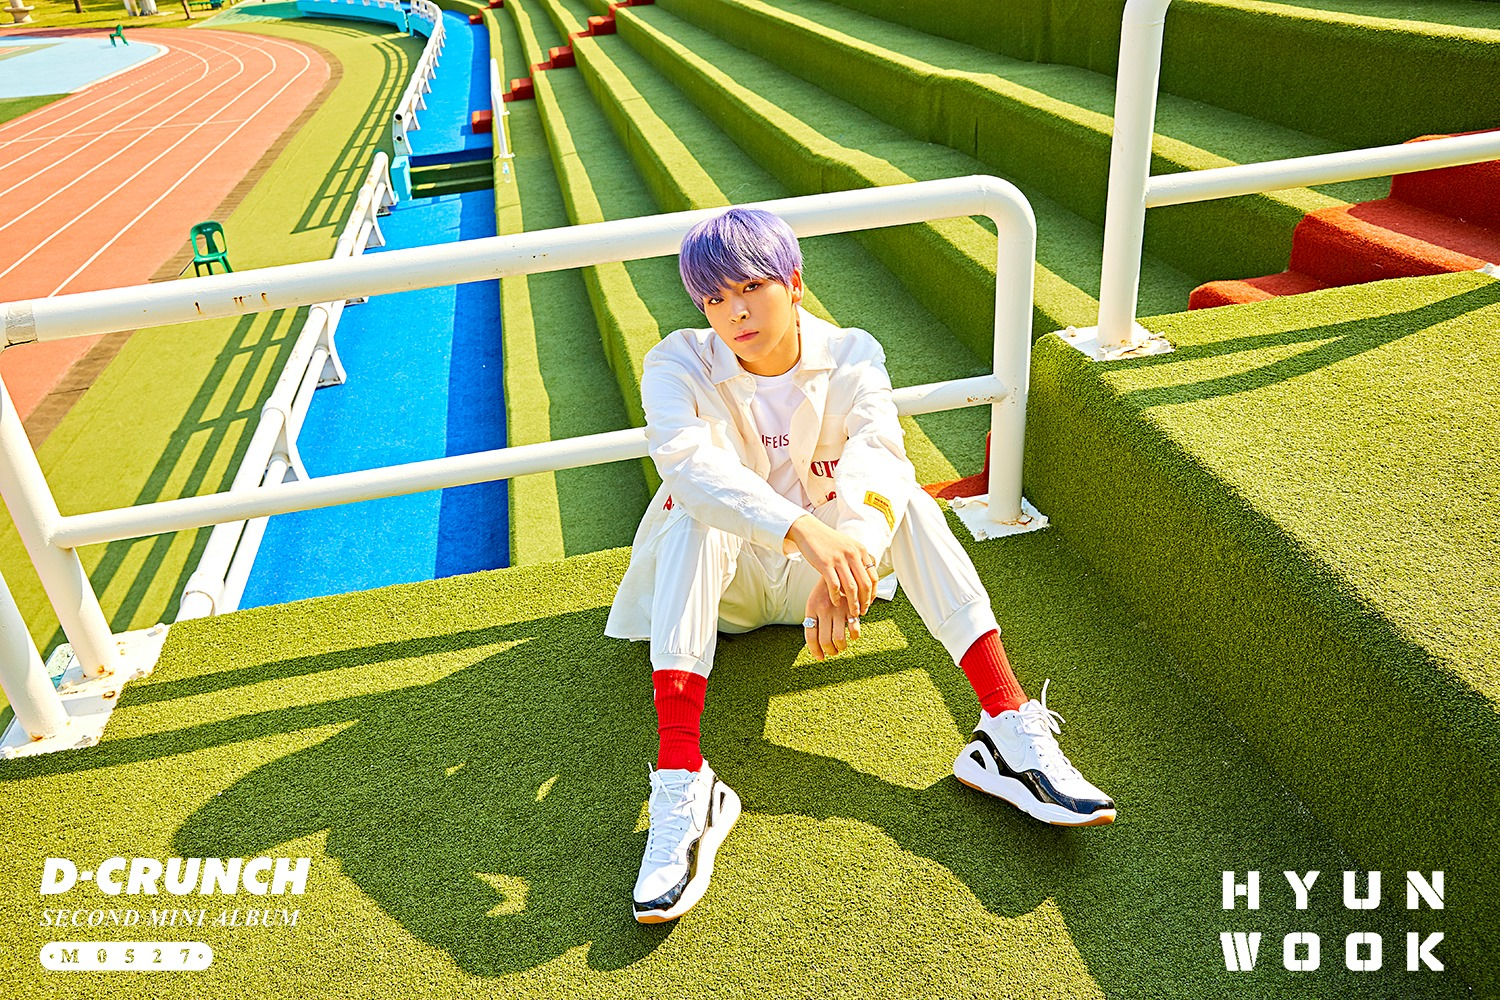 D-CRUNCH 2nd Mini Album <M0527> Official Photo Teaser